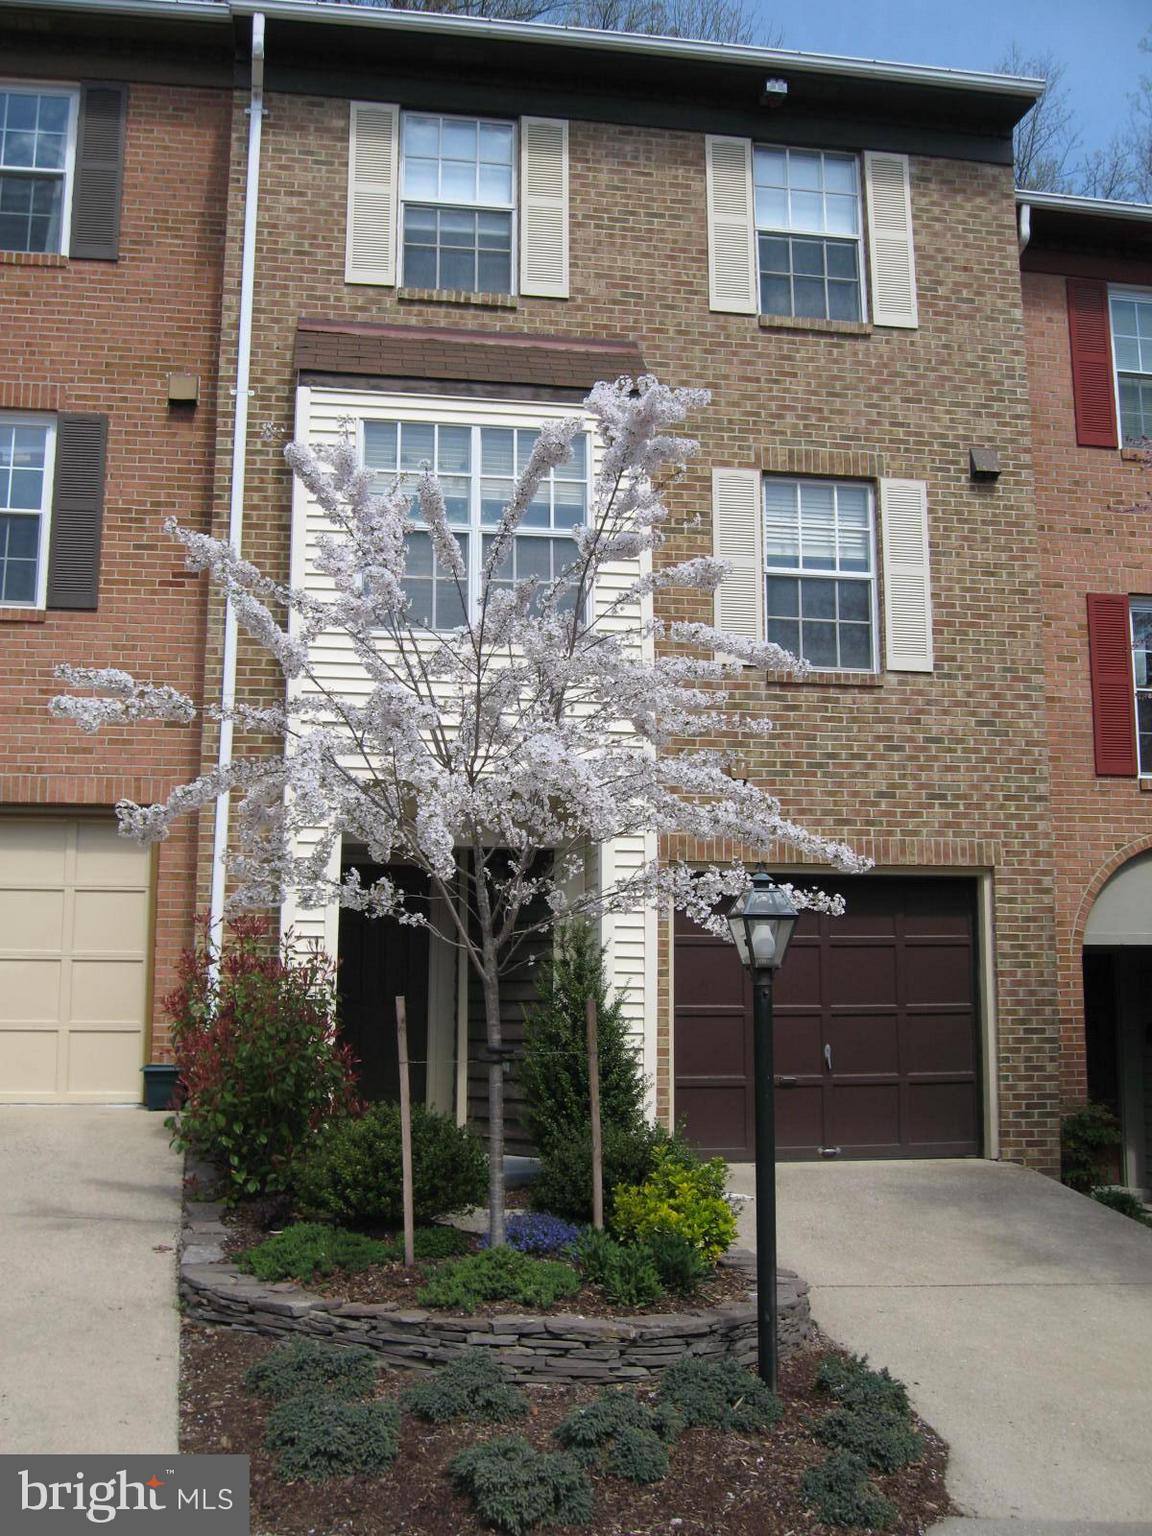 This 3 bed 4 bath brick townhouse with a single car garage is in a commuter friendly location at  the end of the community on a cul-de-sac and backs to woods.  It is less than a mile drive to the Van Dorn Metro station or is a couple of blocks to the last bus stop for the Van Dorn Metro.  (http://www.fairfaxcounty.gov/connector/pdf/109.pdf or http://www.fairfaxcounty.gov/connector/pdf/232.pdf) Conveniently and centrally located 8 miles from the Pentagon, 3 miles from the Hoffman building, 3 miles from the Mark Center, and less than 3 miles from Ft. Belvoir (reverse commute to Belvoir).  Direct access to 495/395. Perfect commute to Belvoir or Andrews AFB.  It is less than a 30 minute metro ride to downtown D.C..  ~ mile to the Kingstowne shopping center with a movie theatre, restaurants and 2 grocery stores. About 1.5 miles to Lee District Recreation Center, a community Rec. center with Fitness Center, Pool.